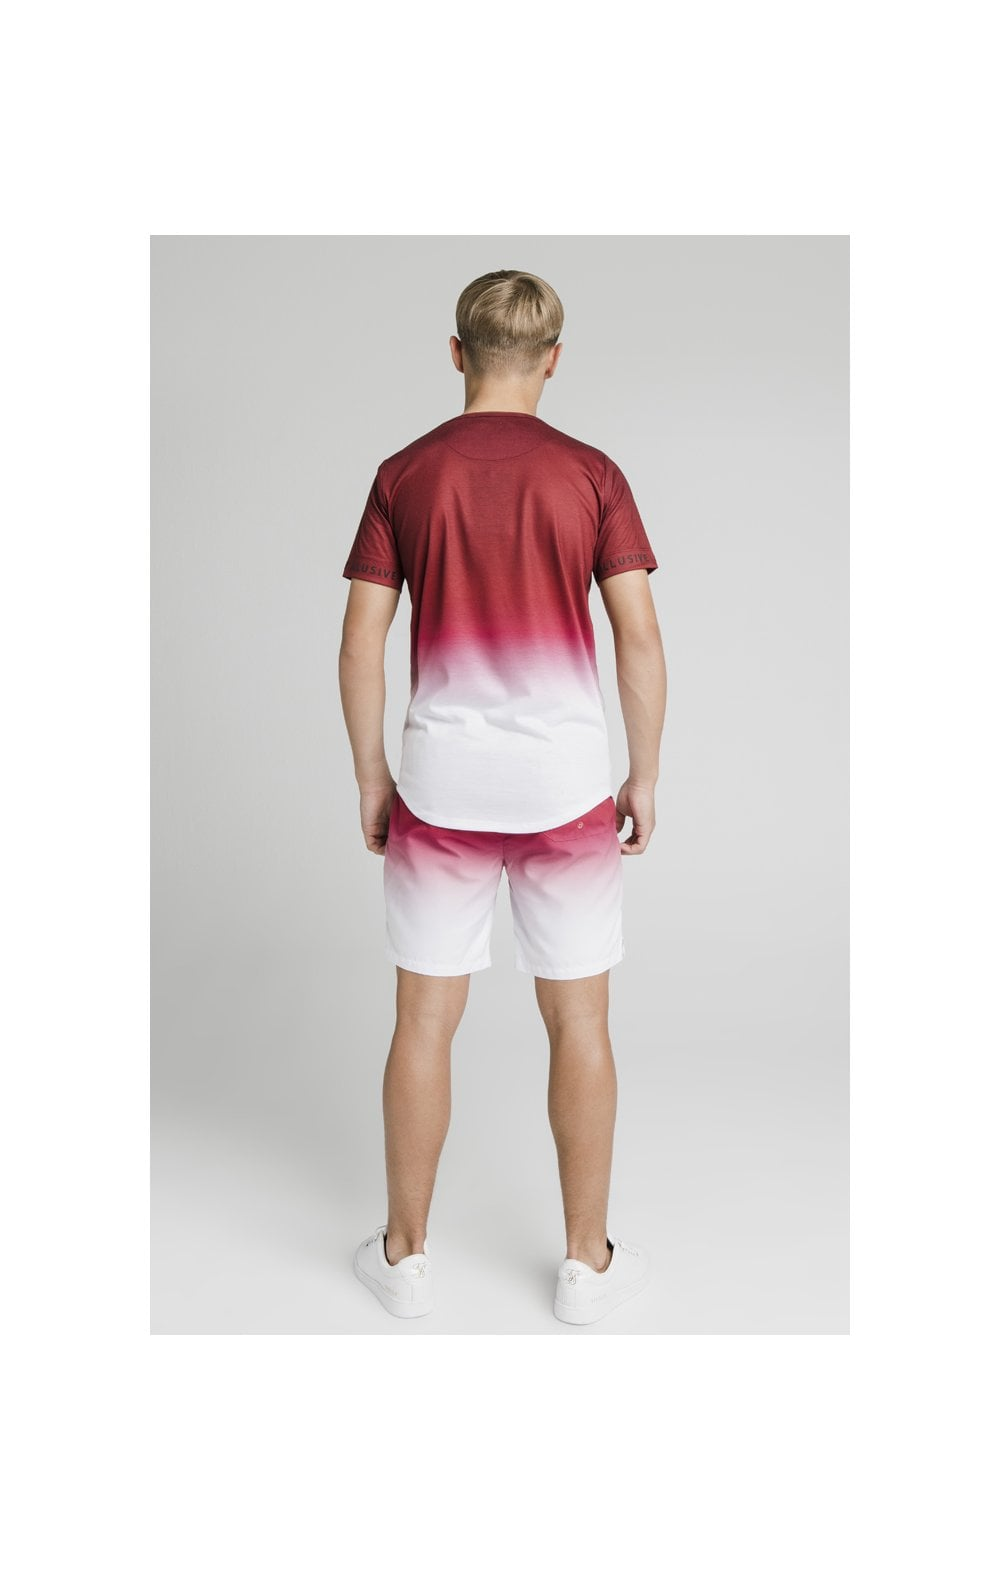 Illusive London Fade Swim Shorts - Red & White (7)